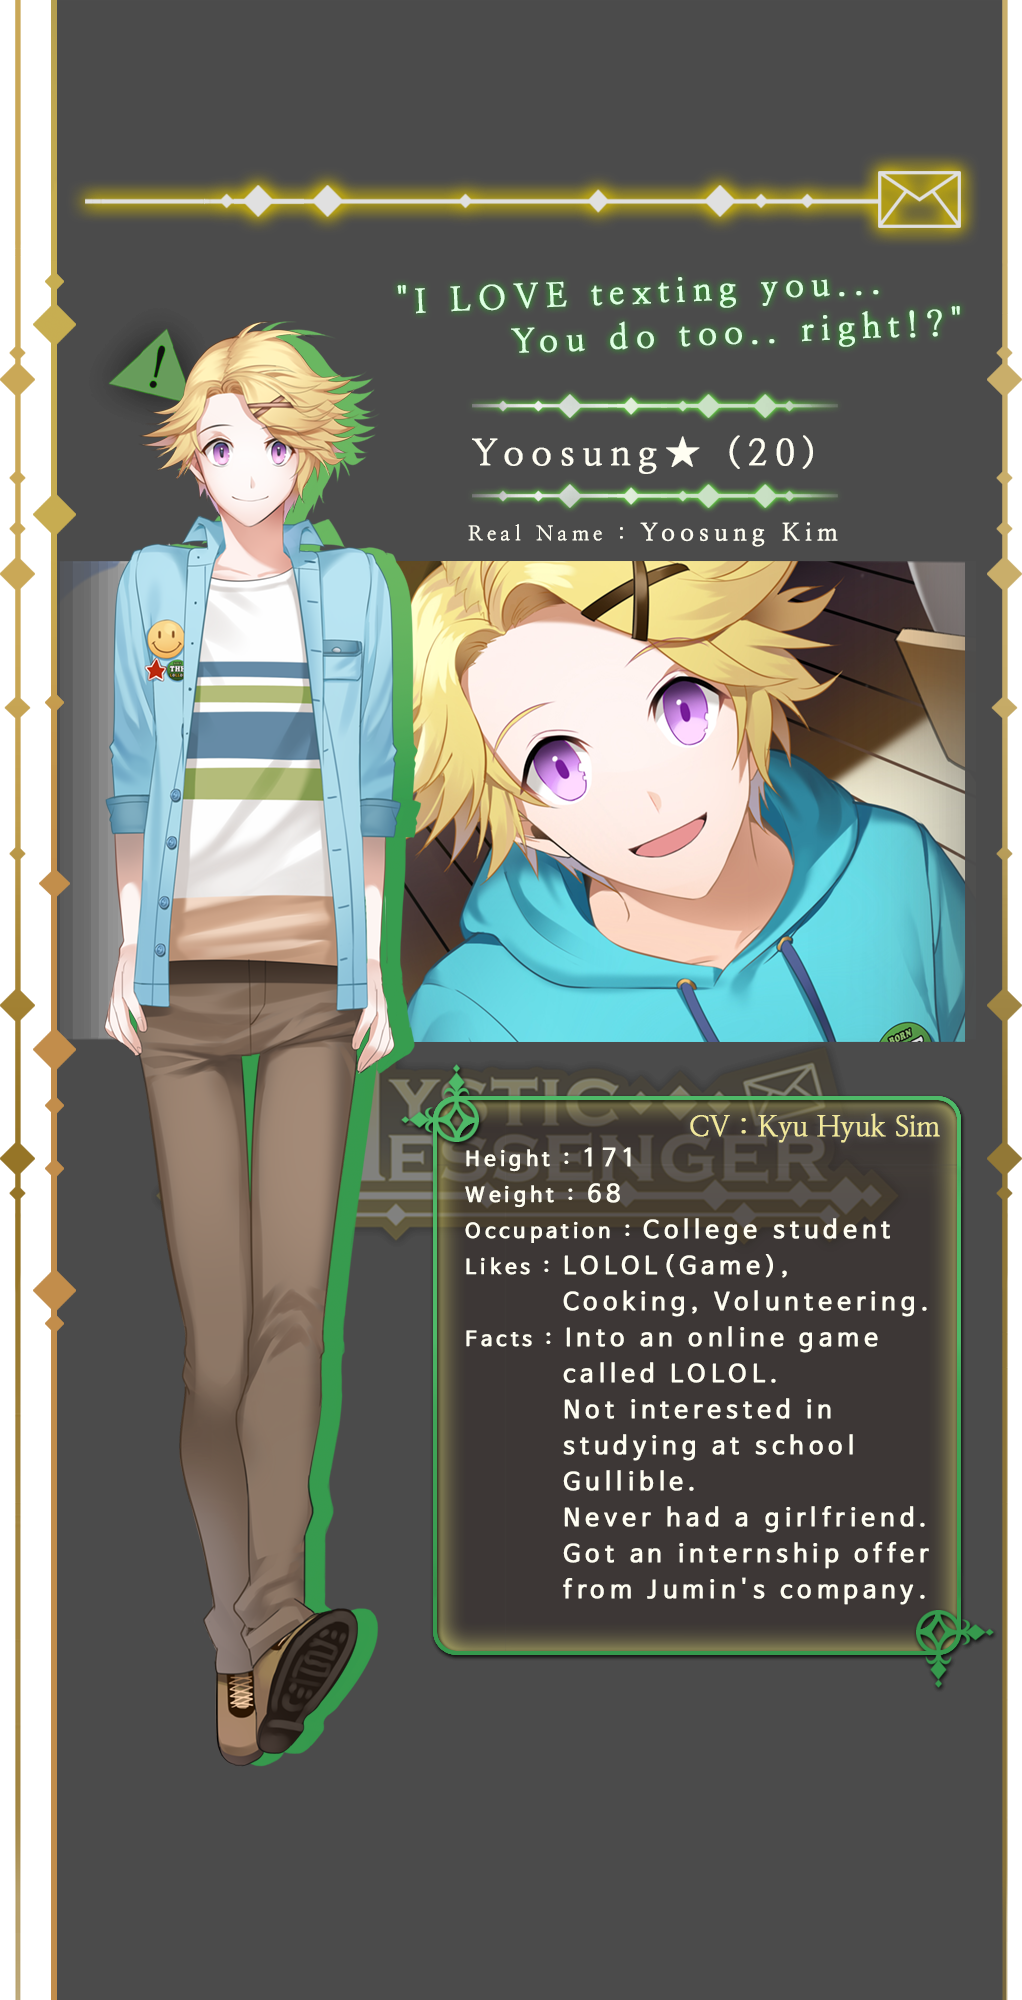 Yoosung Mystic Messenger Wiki Fandom Powered By Wikia